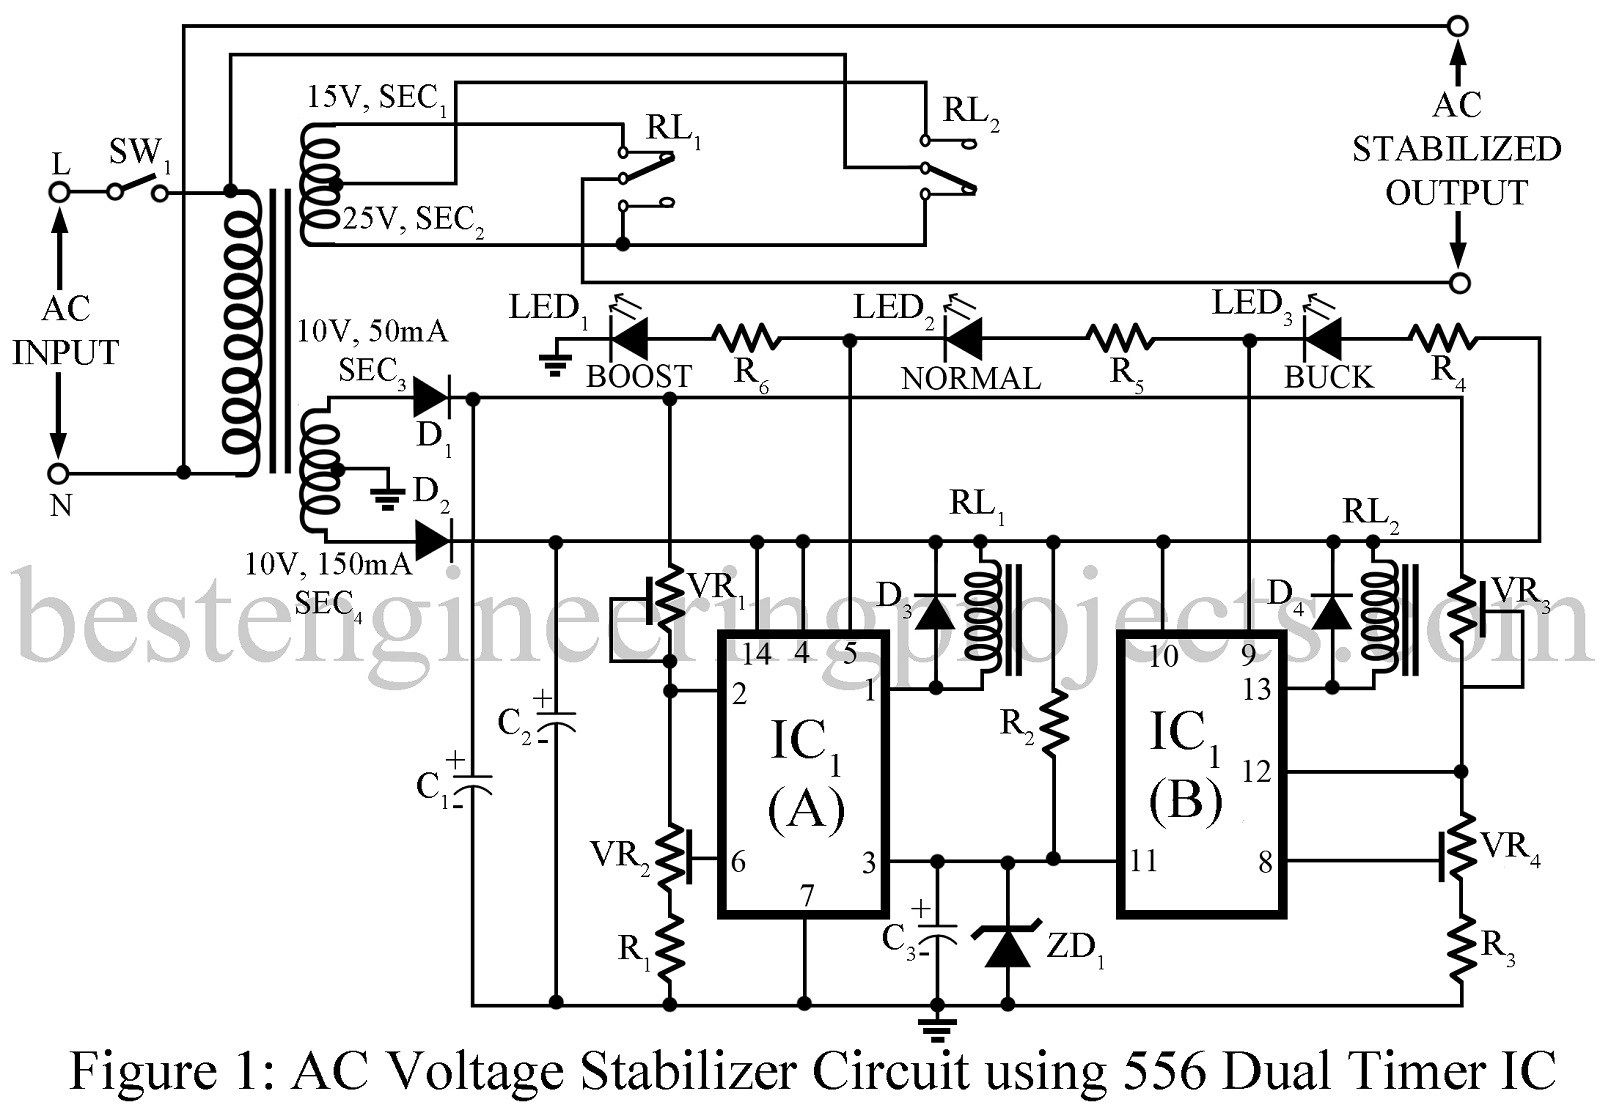 ac voltage stabilizer circuit using 556 ic best engineering rh pinterest com circuit diagram of servo voltage stabilizer circuit diagram of servo voltage stabilizer